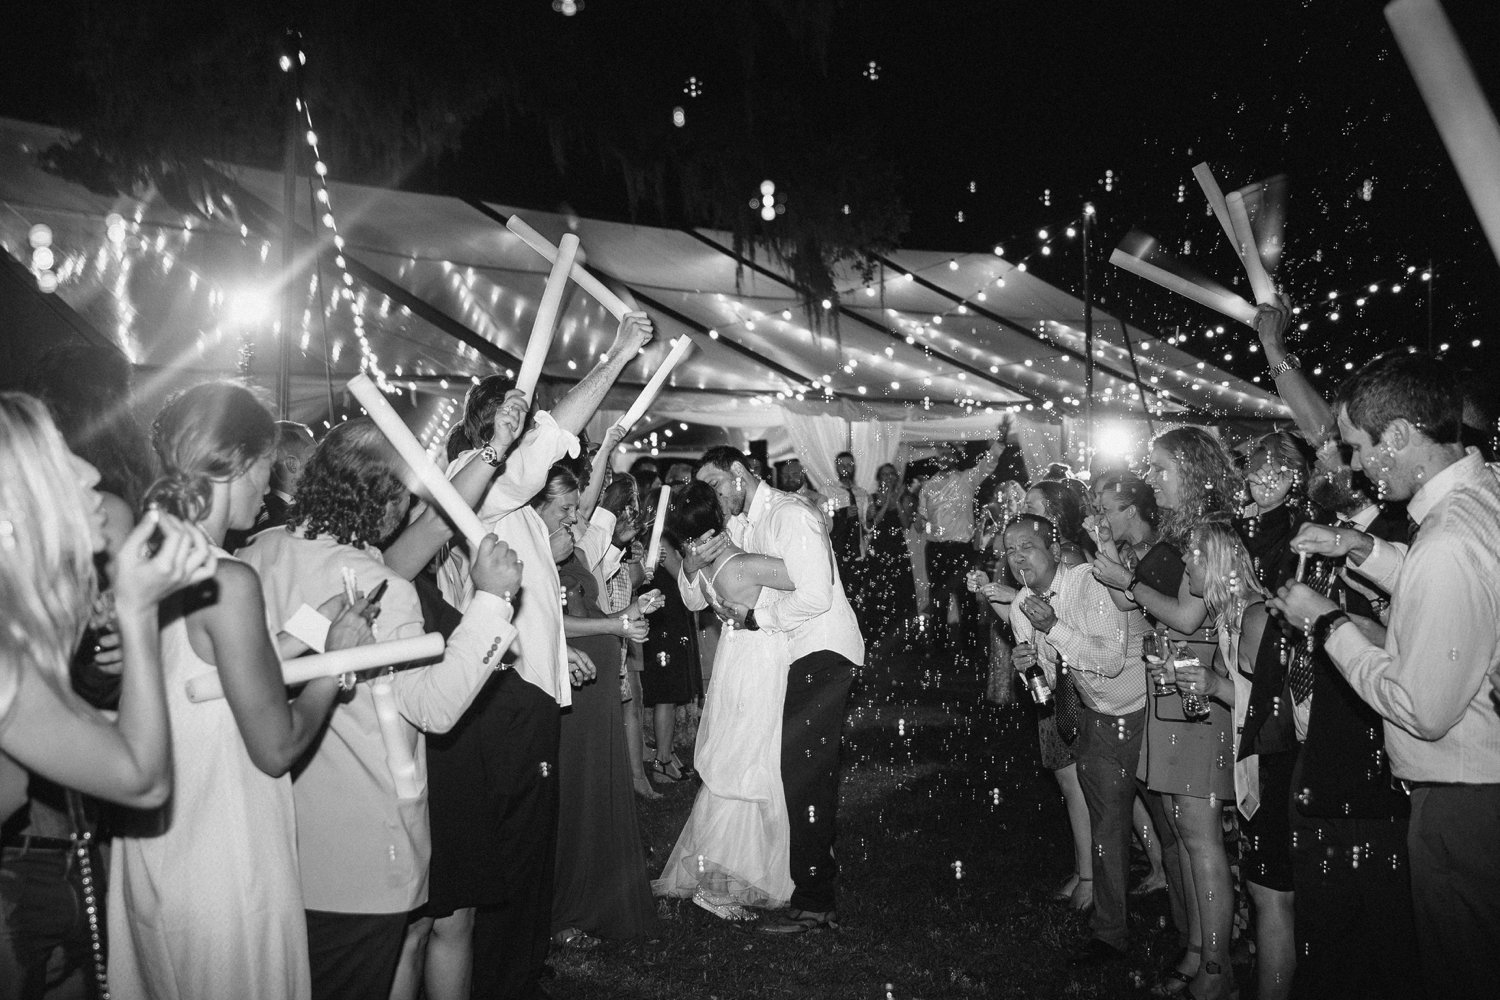 Lindsey_A_Miller_Photography_mcleod_plantation_wedding_charleston_south_carolina_clear_tent_spring_mod_events_102.jpg